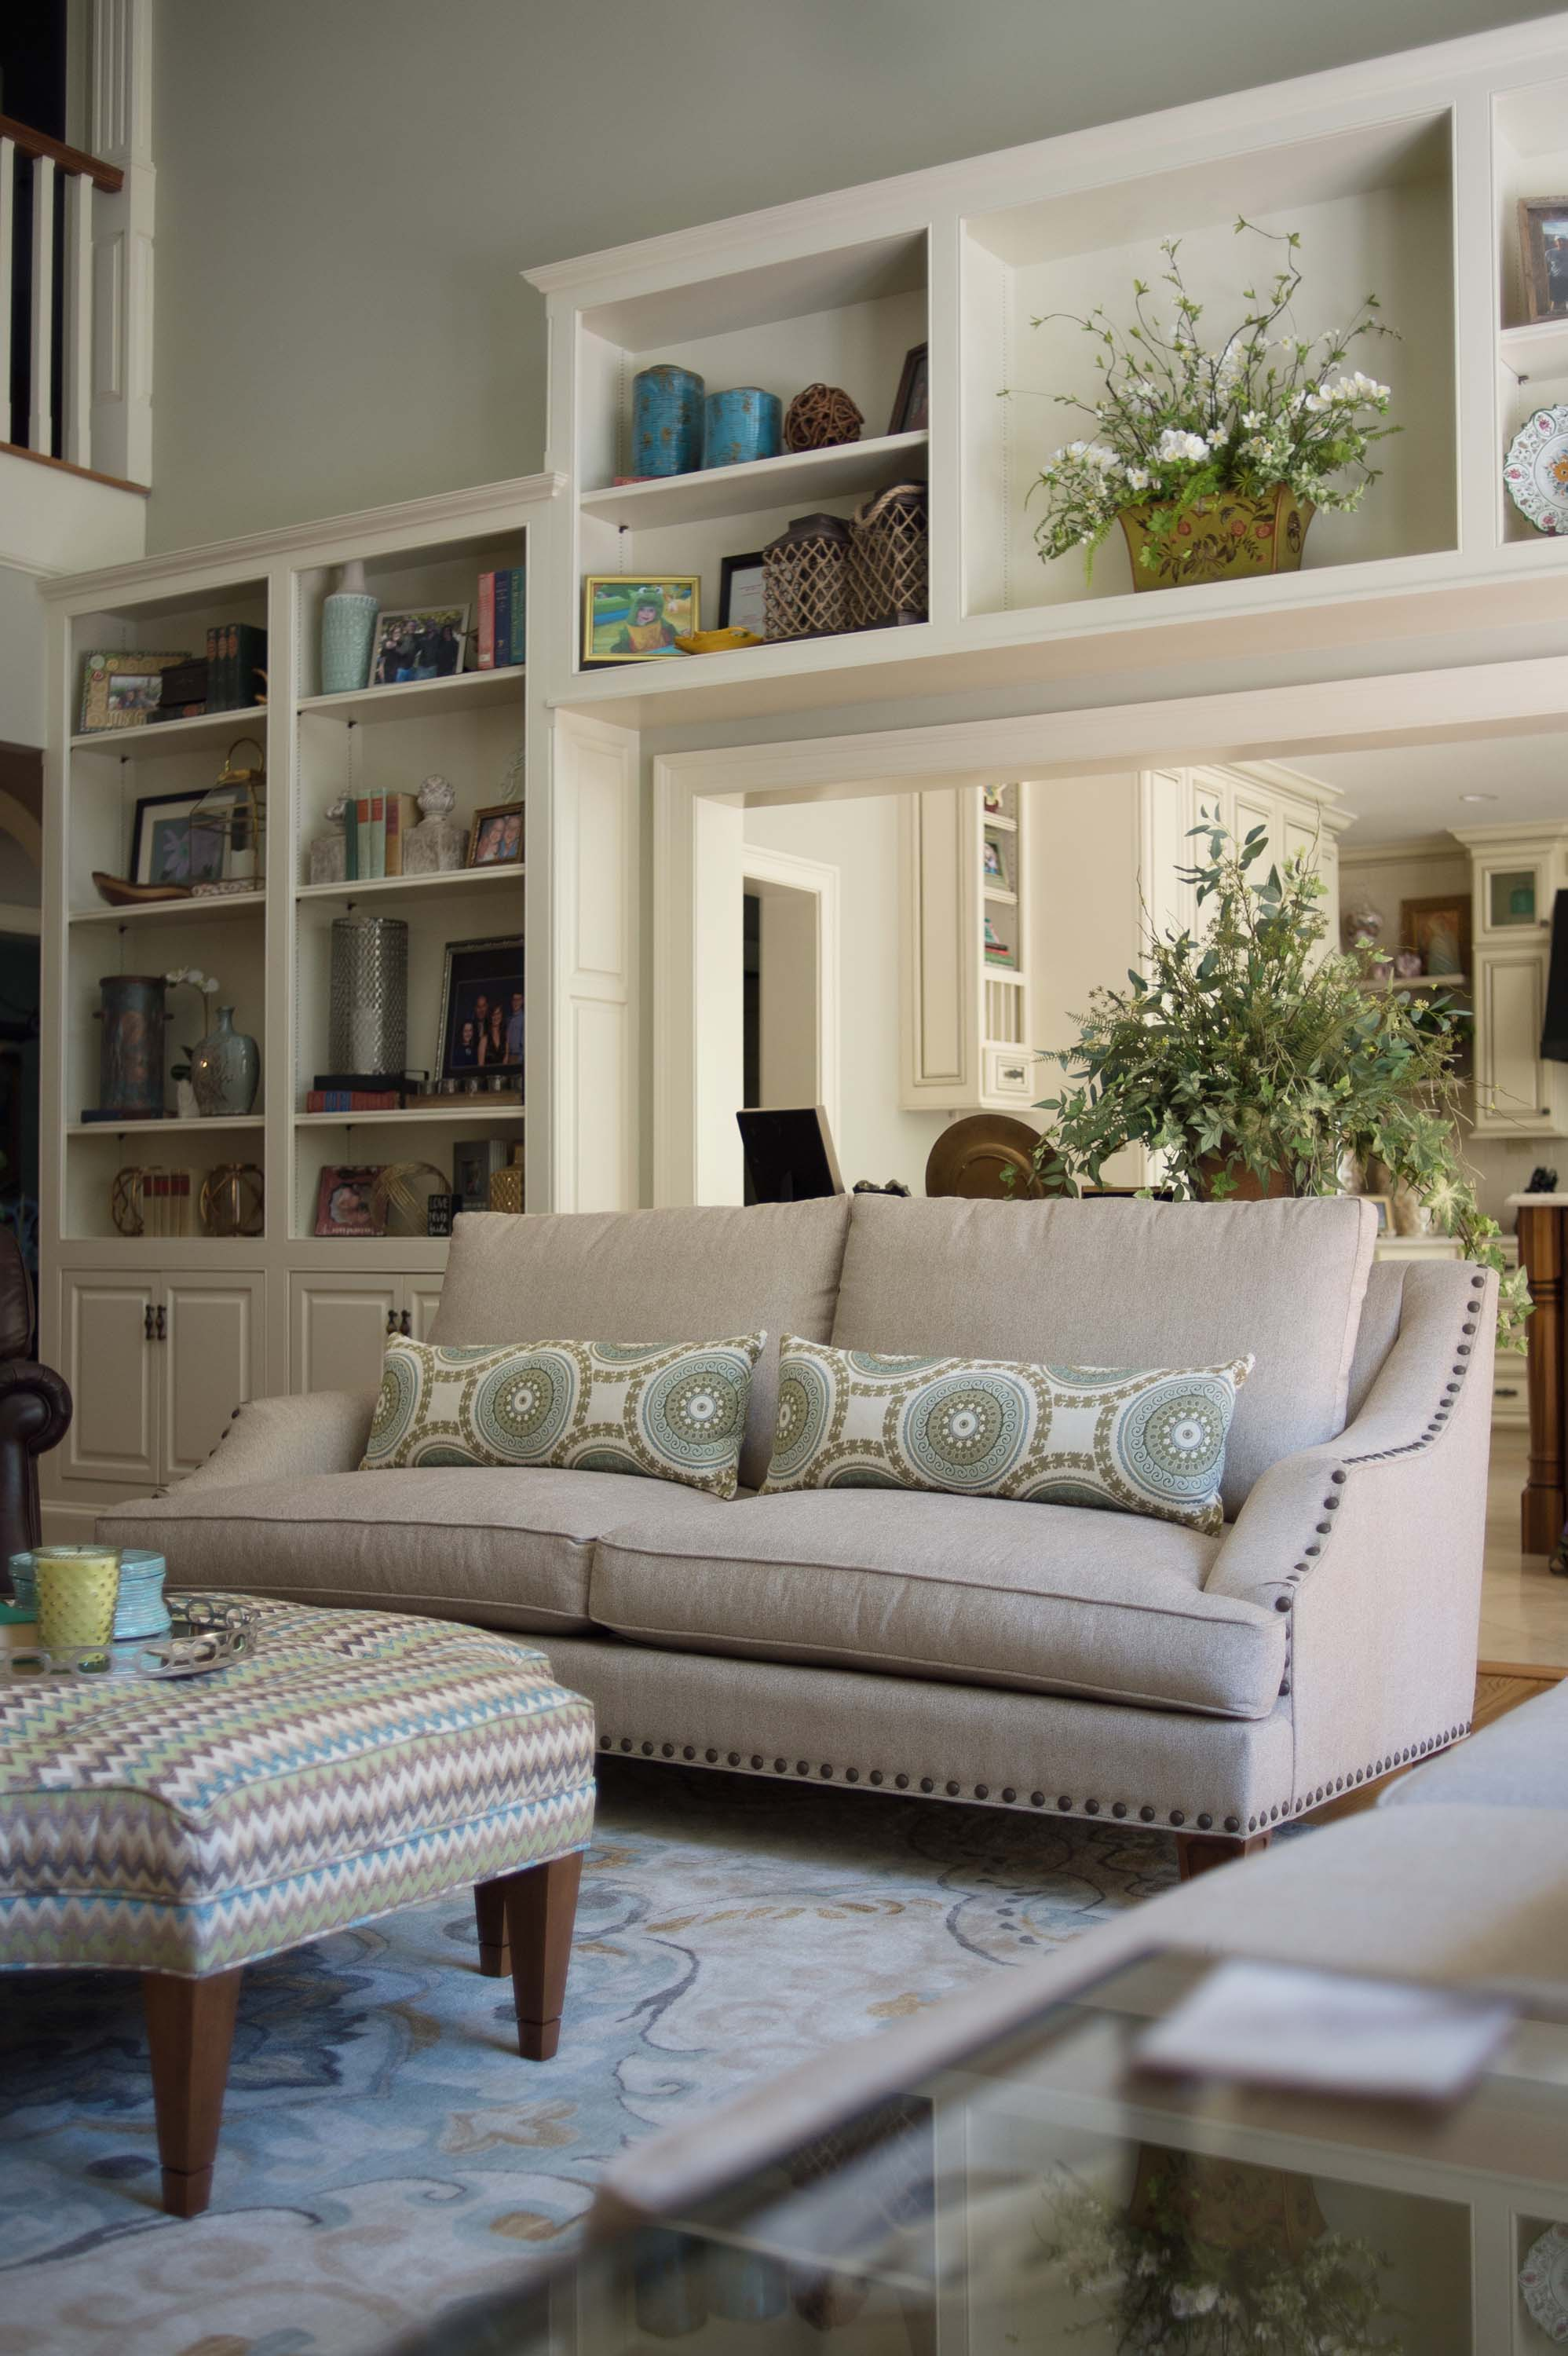 Living room with sofa, cabinet and indoor plants